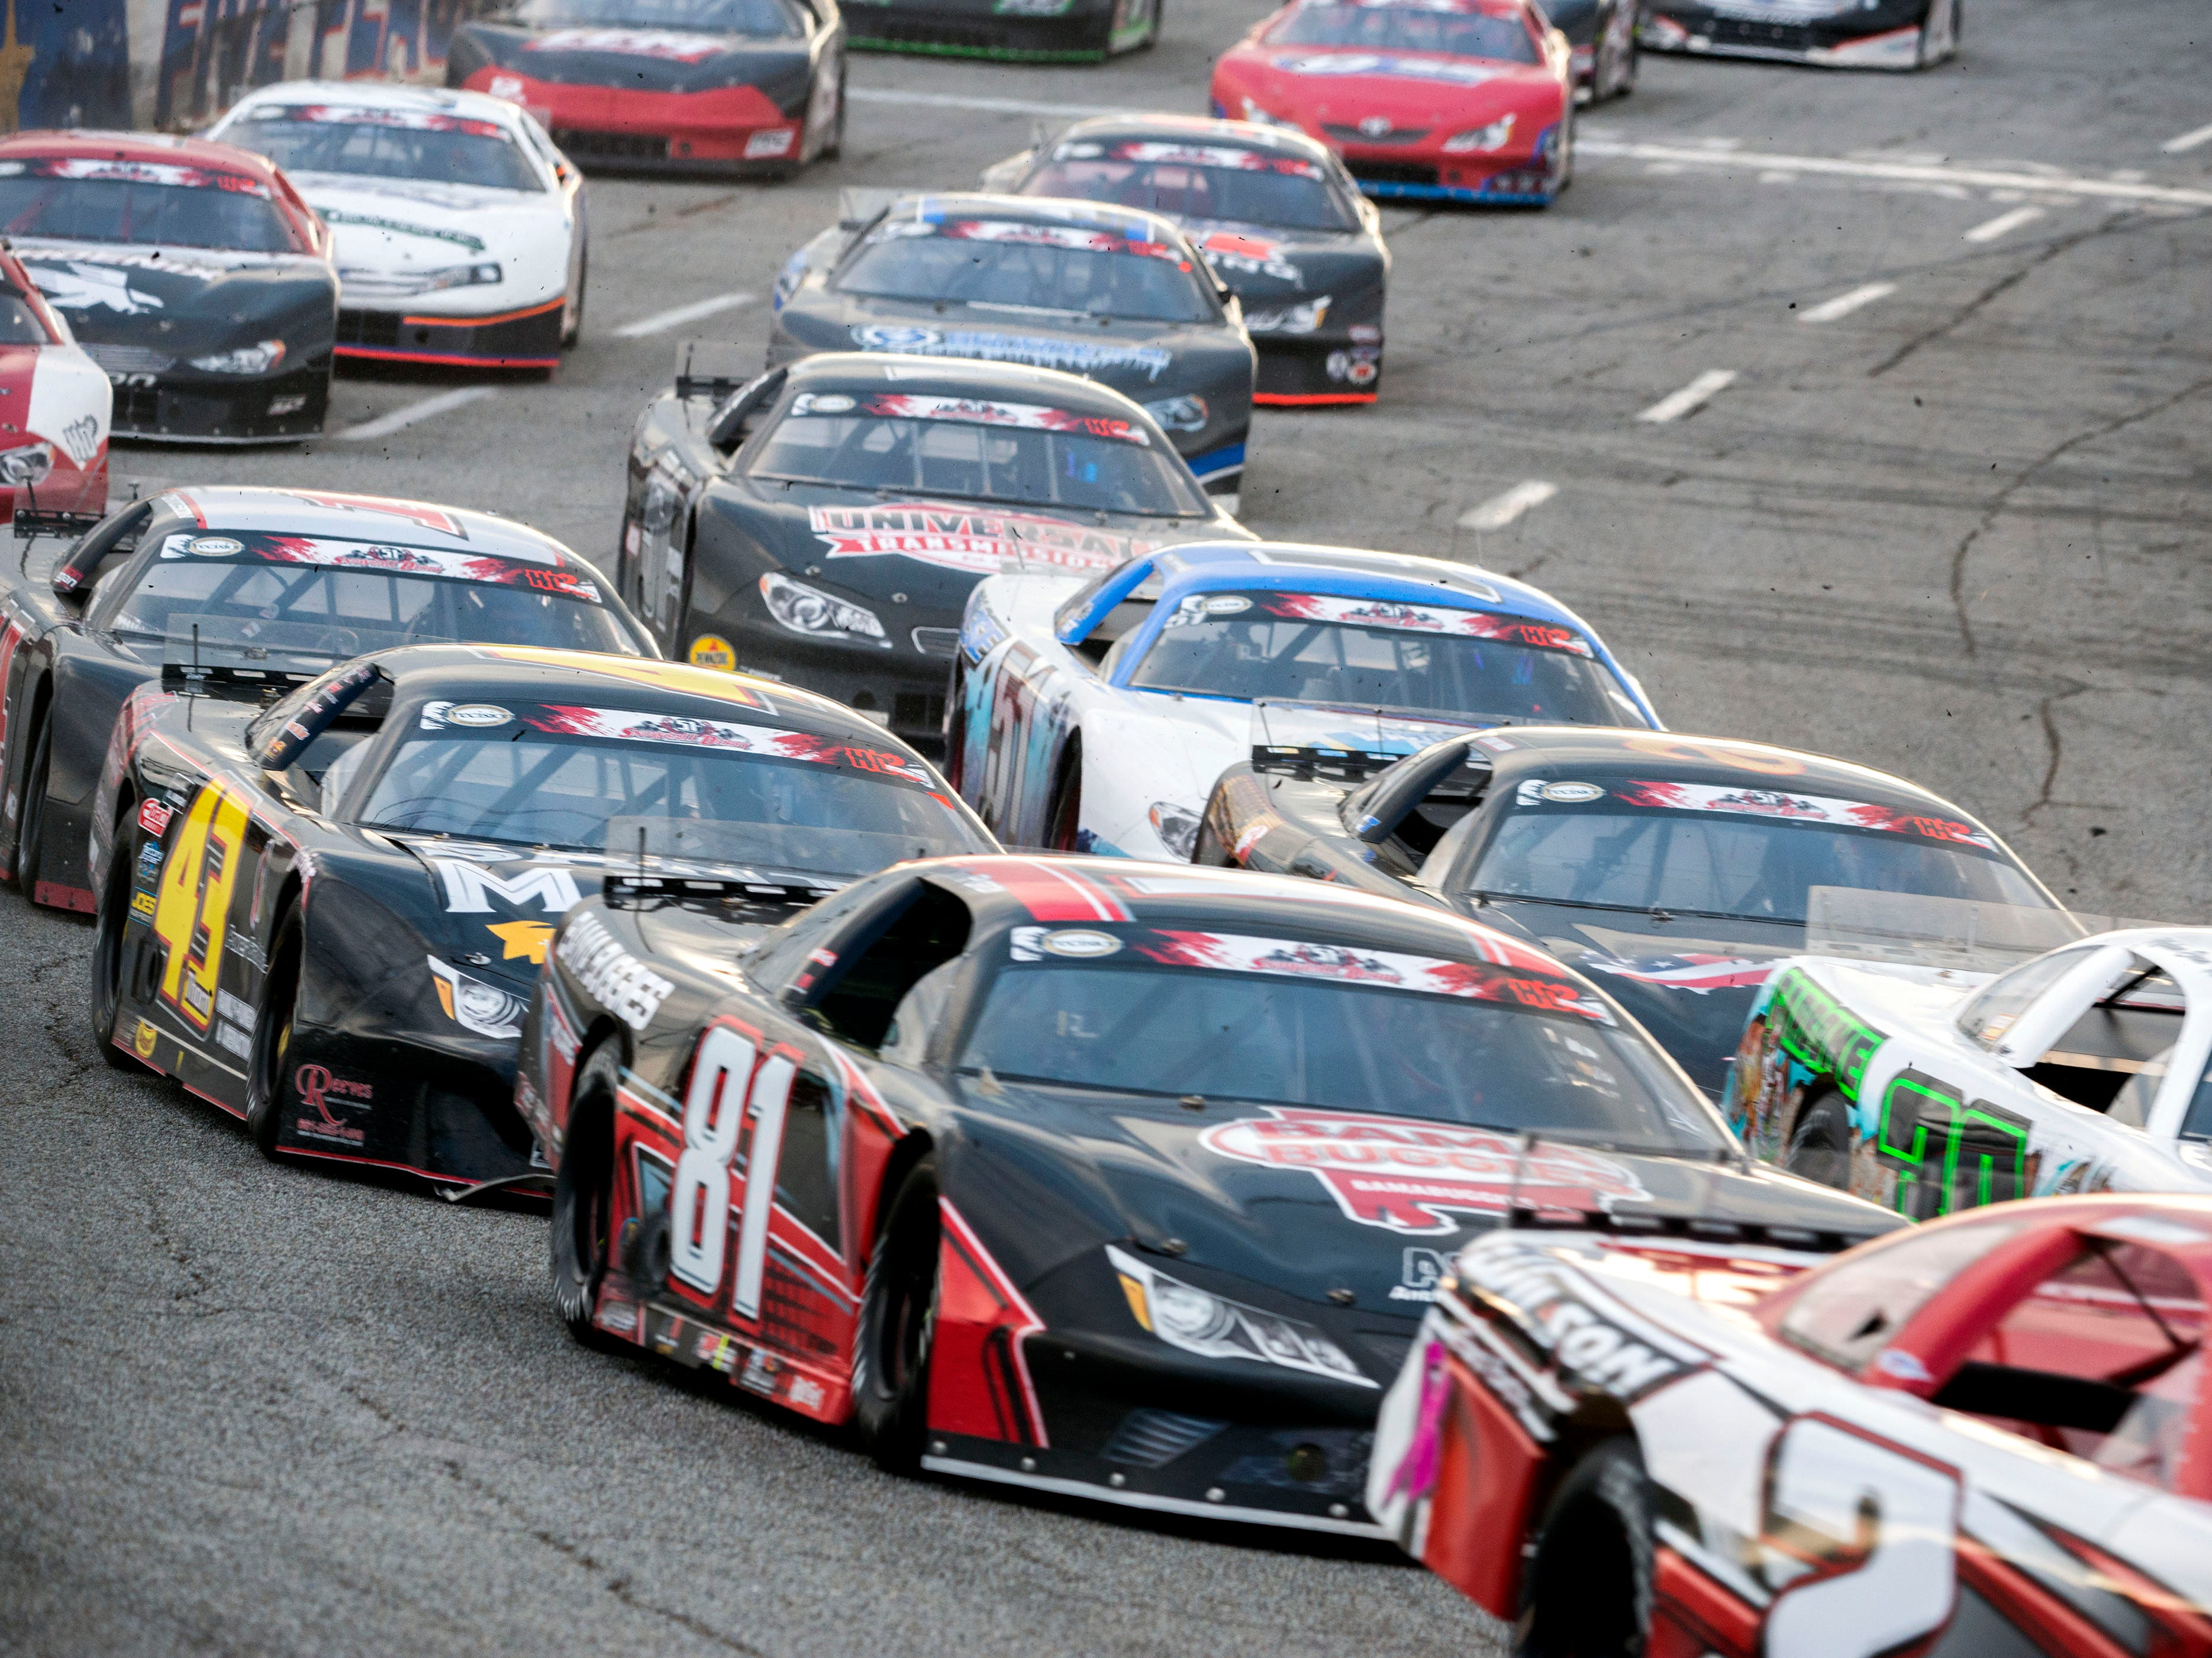 Racers make their way around the track Sunday, December 2, 2018 during the 51st annual Snowball Derby at Five Flags Speedway.